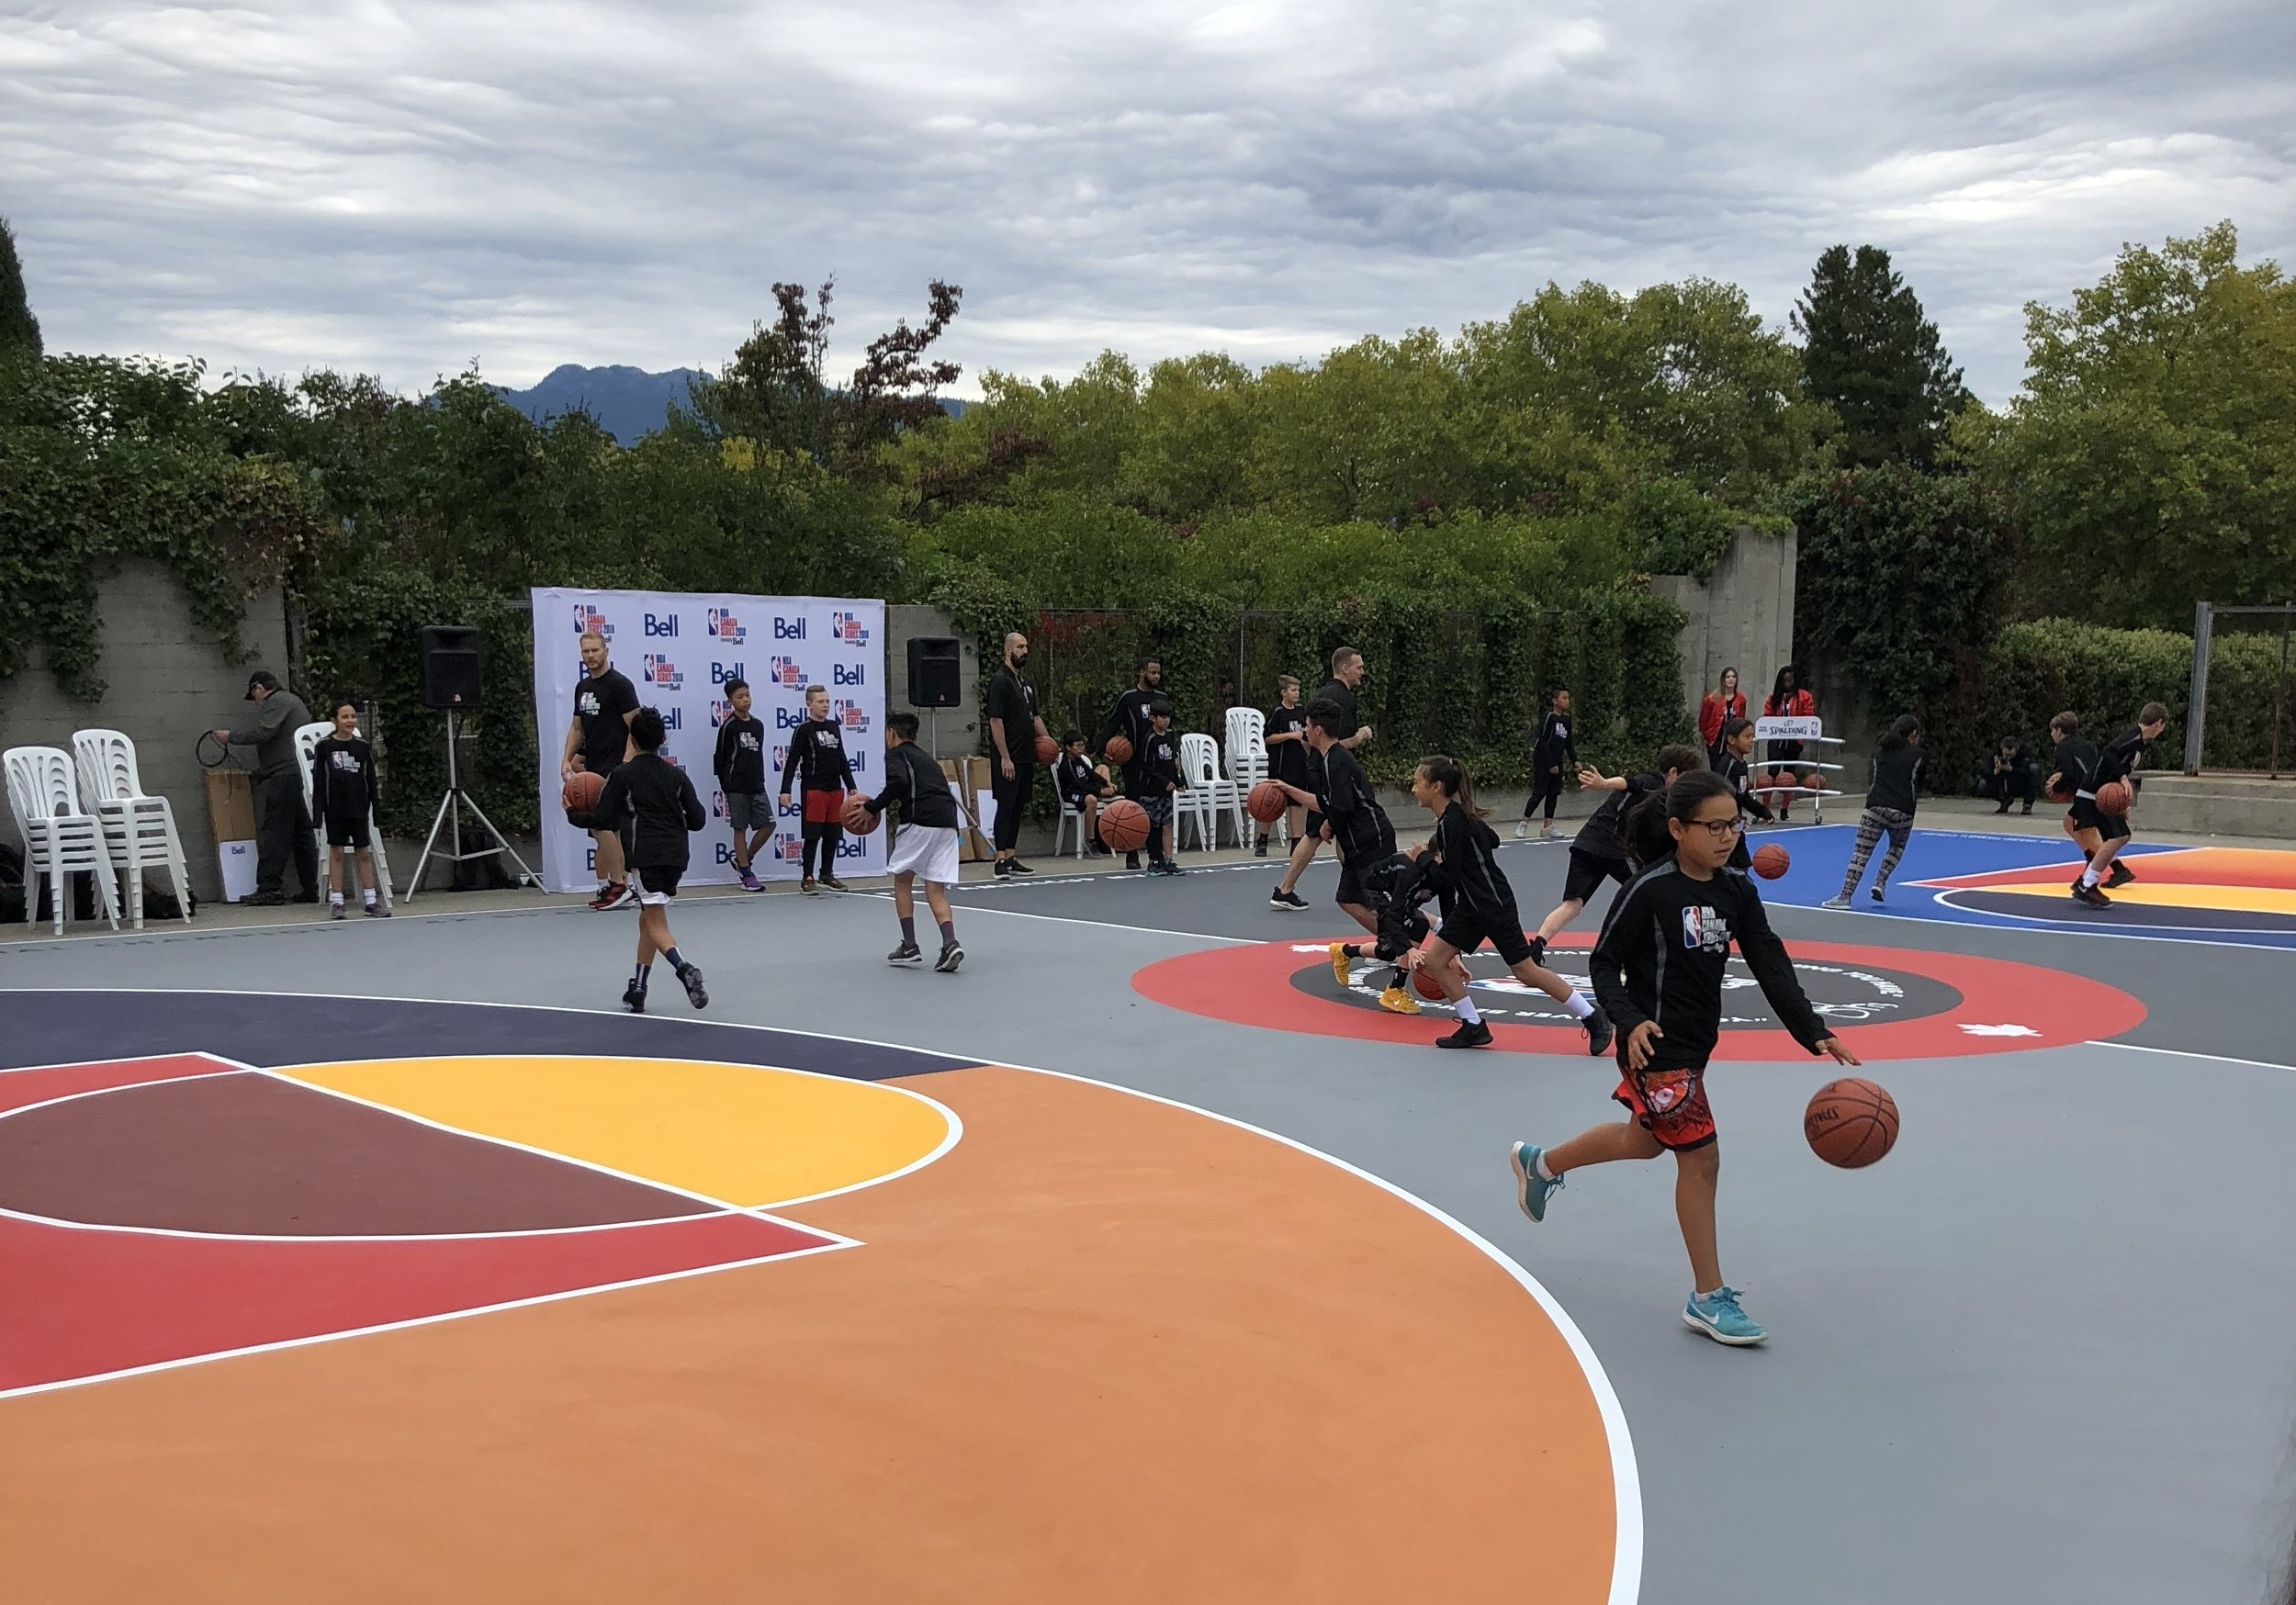 Skills clinic. Working on ball handling with a partner.